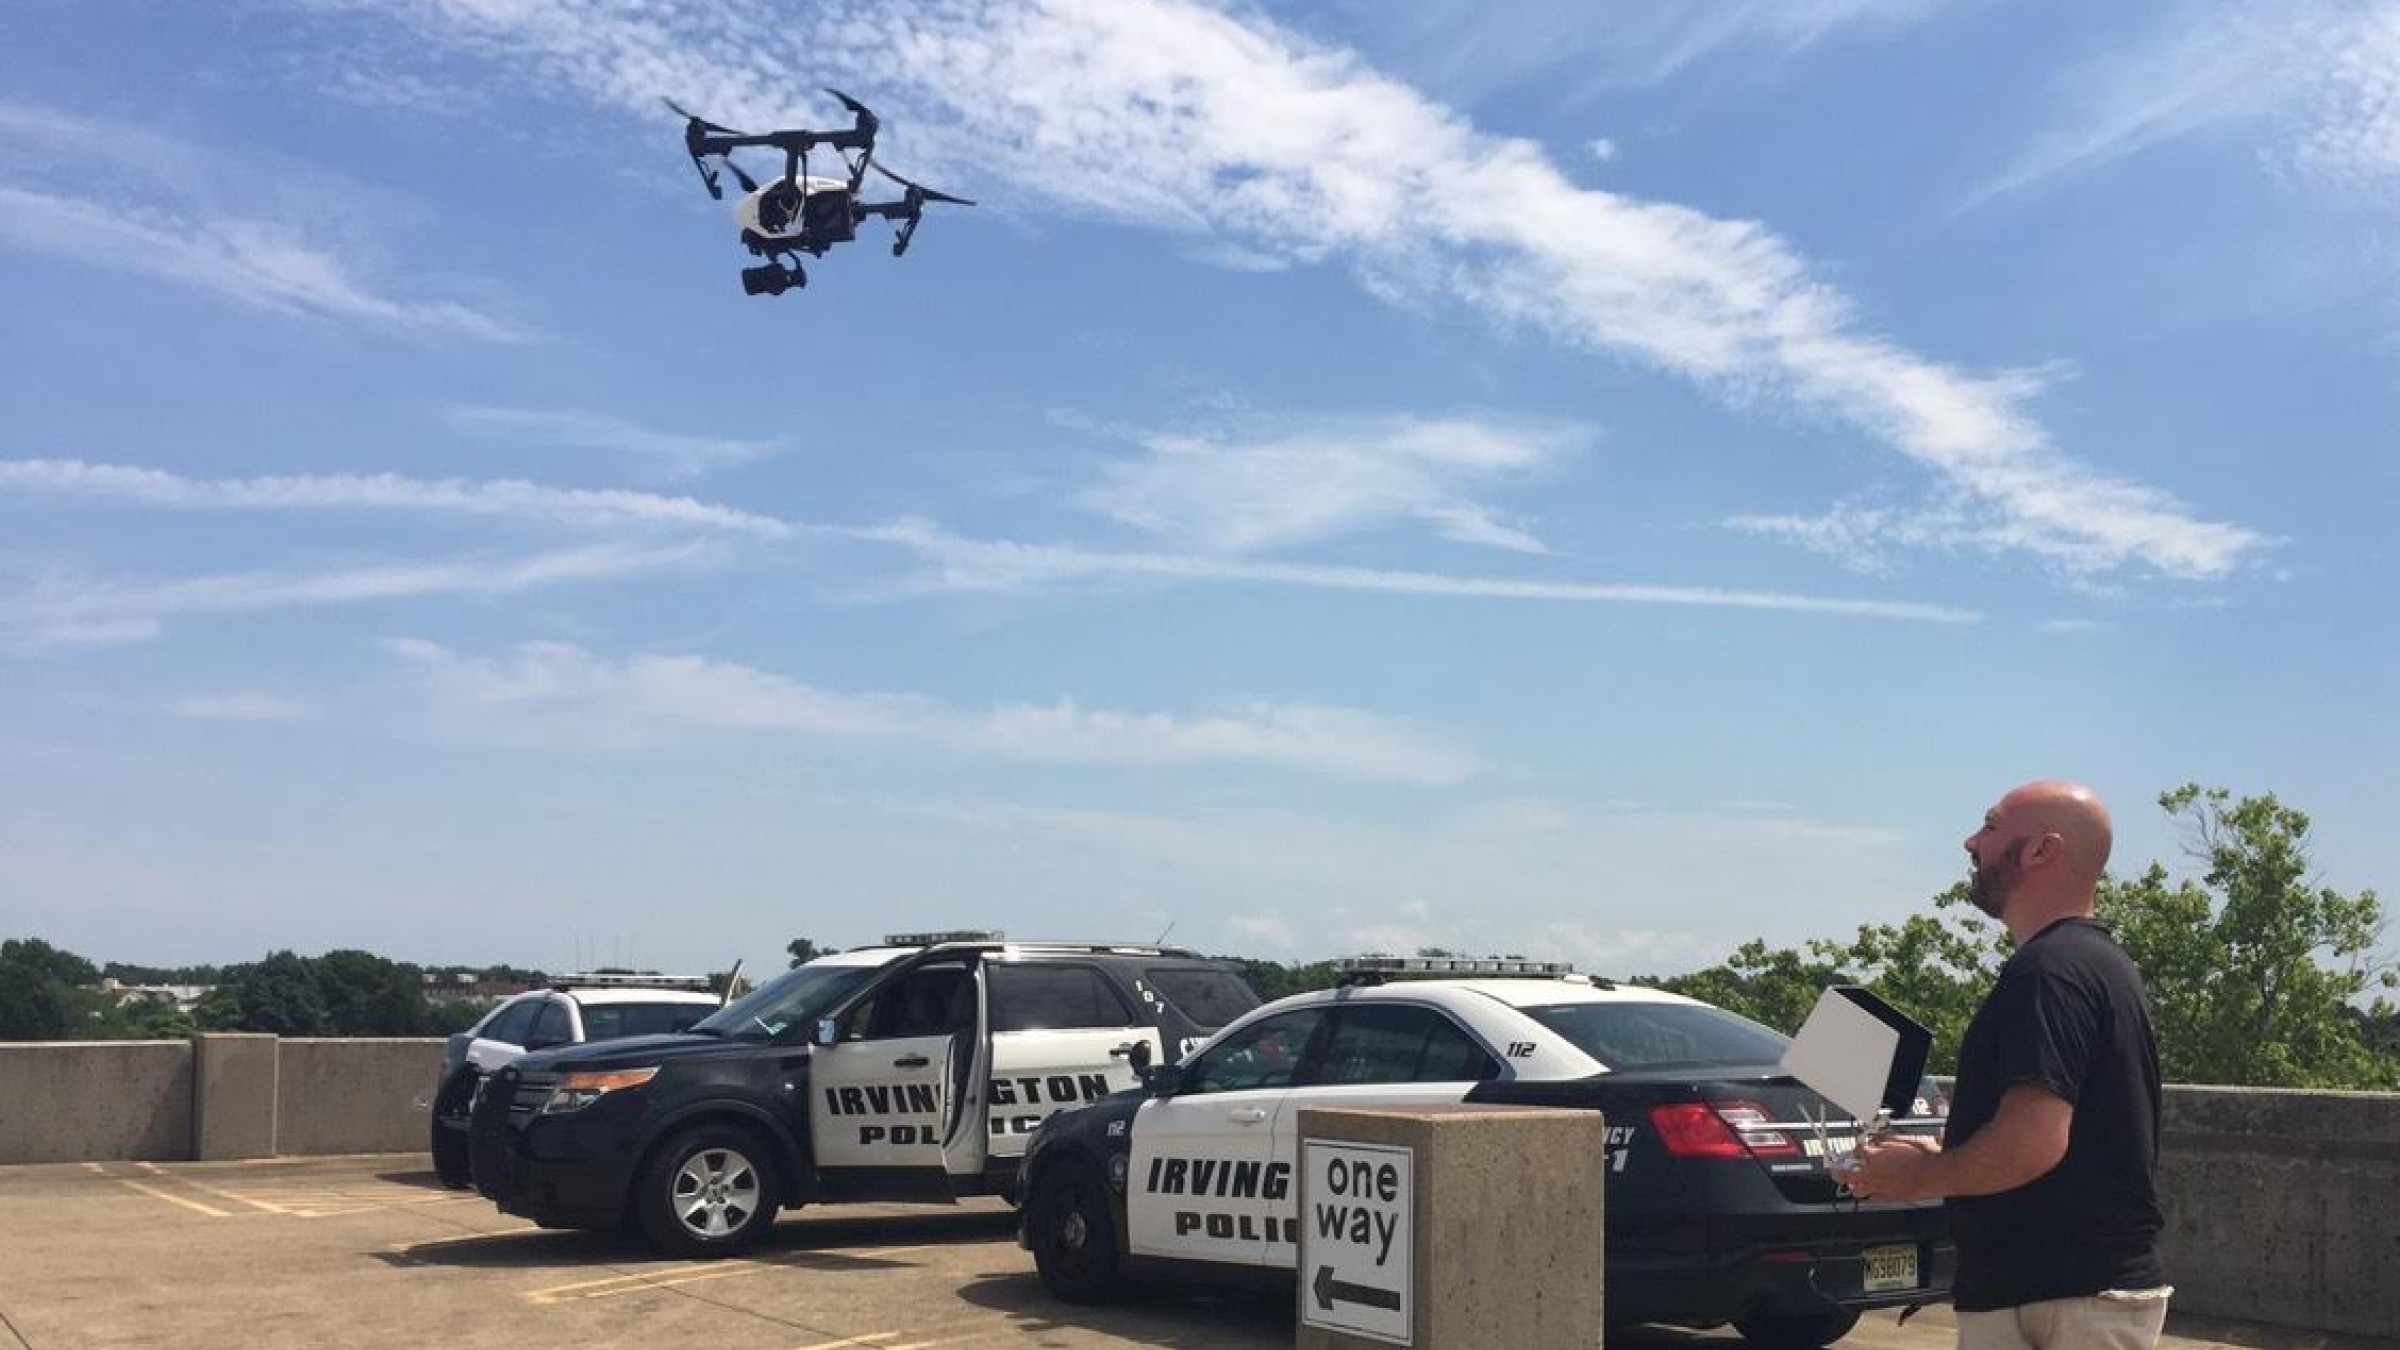 How To Prepare For The Faas New Drone Pilot Certification Exam